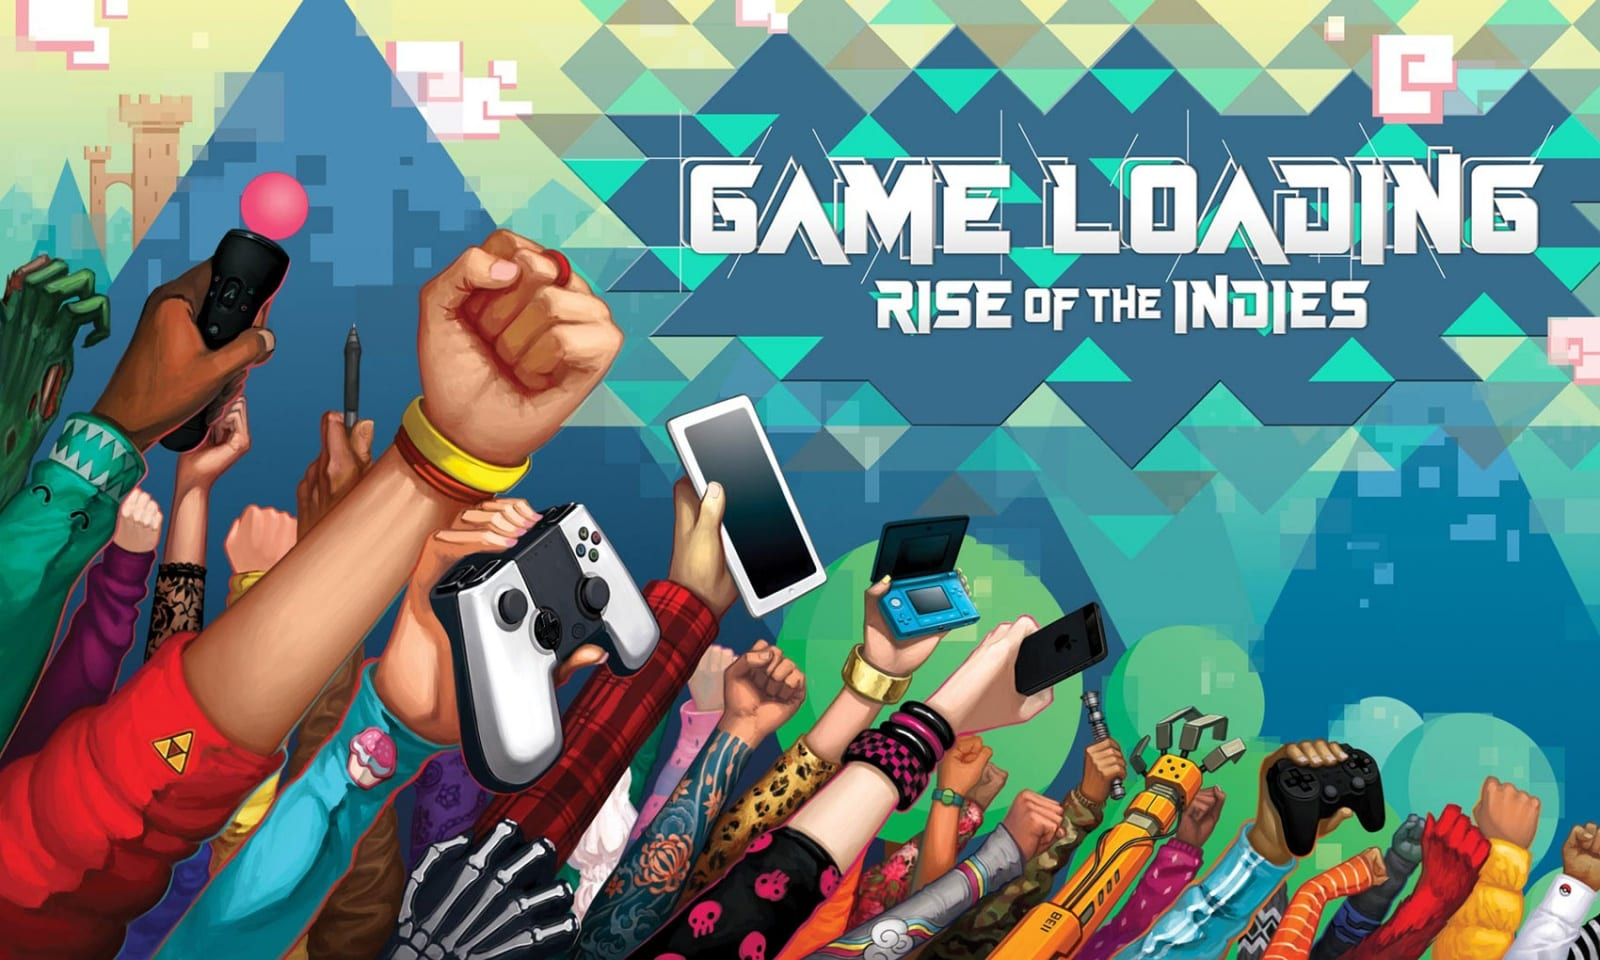 gameloading-rise-of-the-indies-documentary-film-images